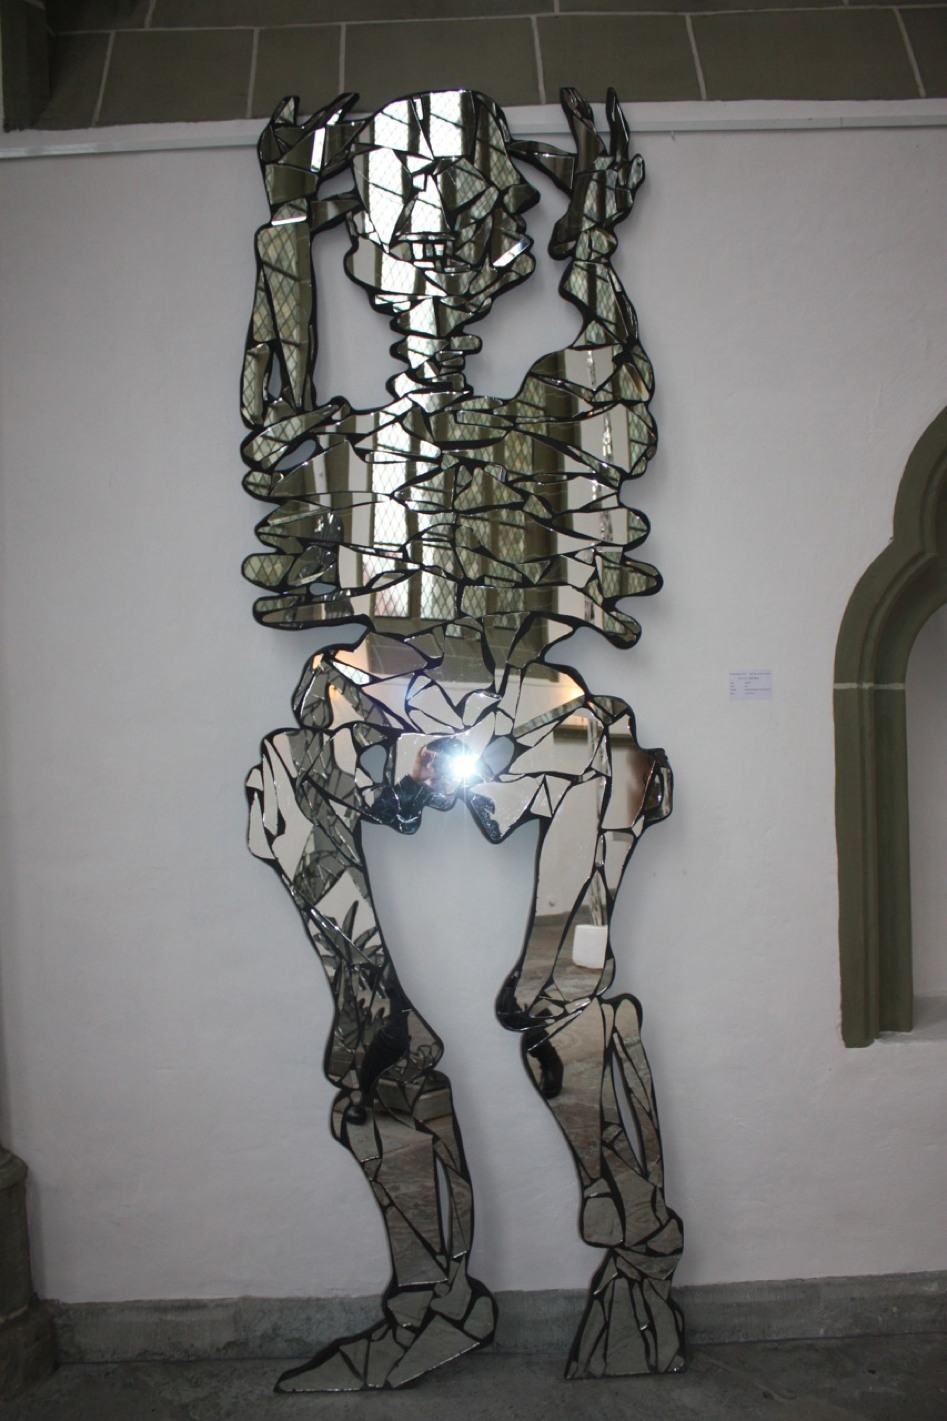 Morfeo 2013, Shattered Mirrors on wood panel, 300 x 90 x 5 cm